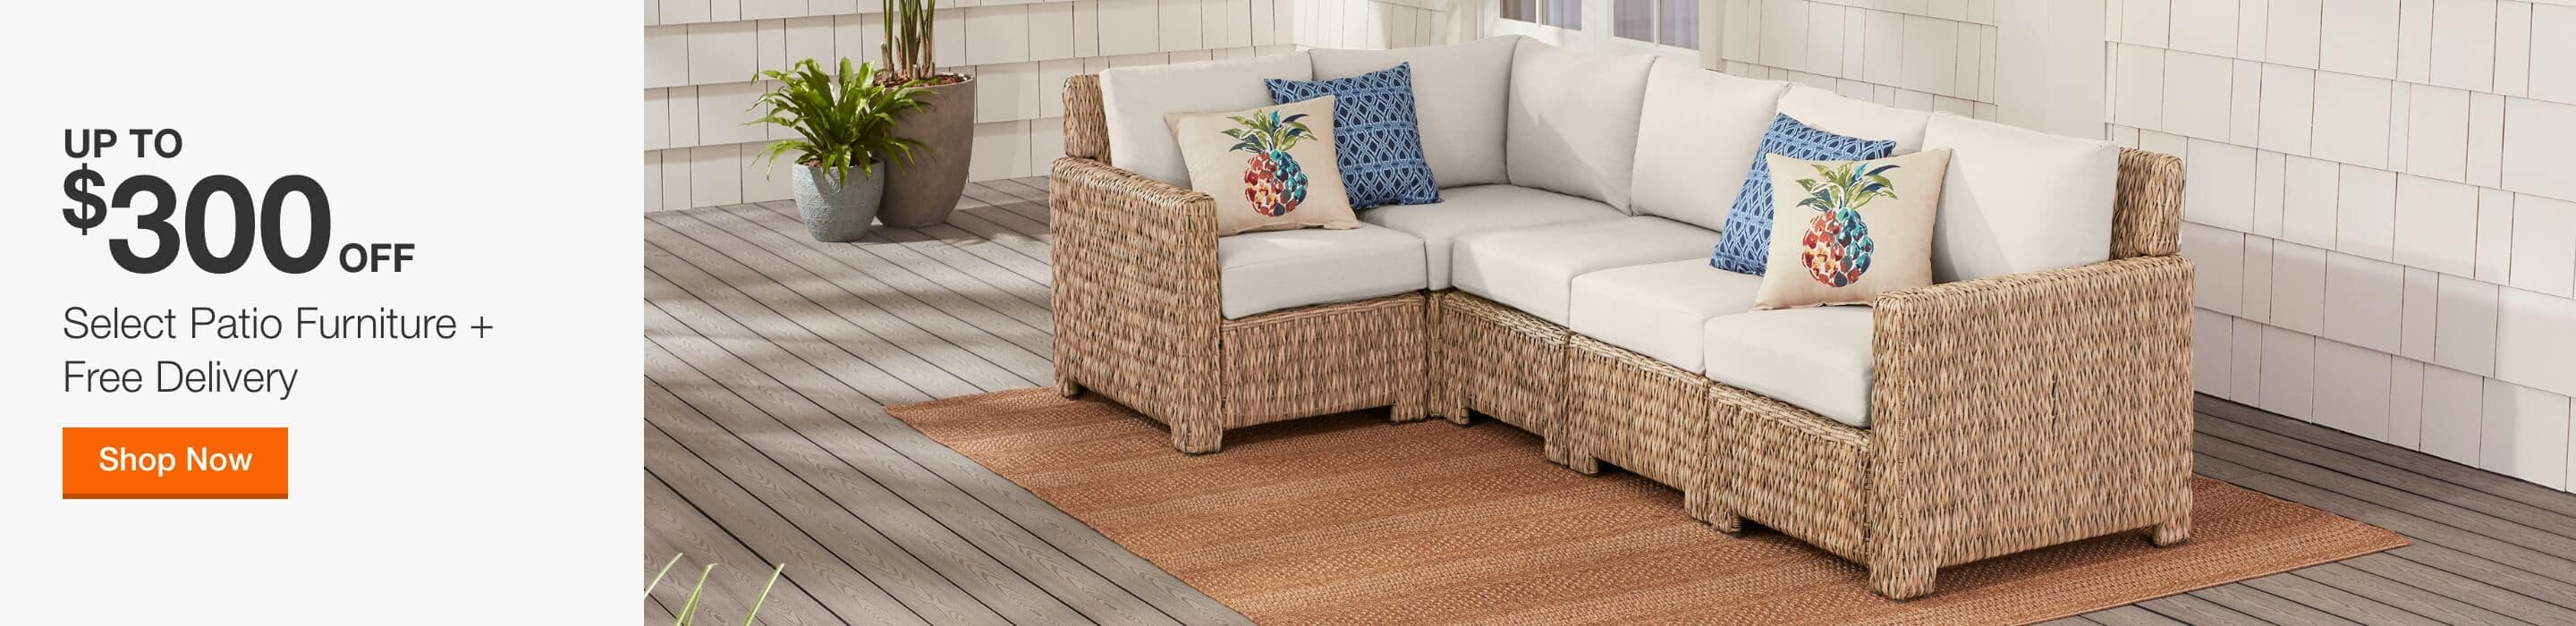 UP TO $300 OFF - Select Patio Furniture + Free Delivery. Shop Now